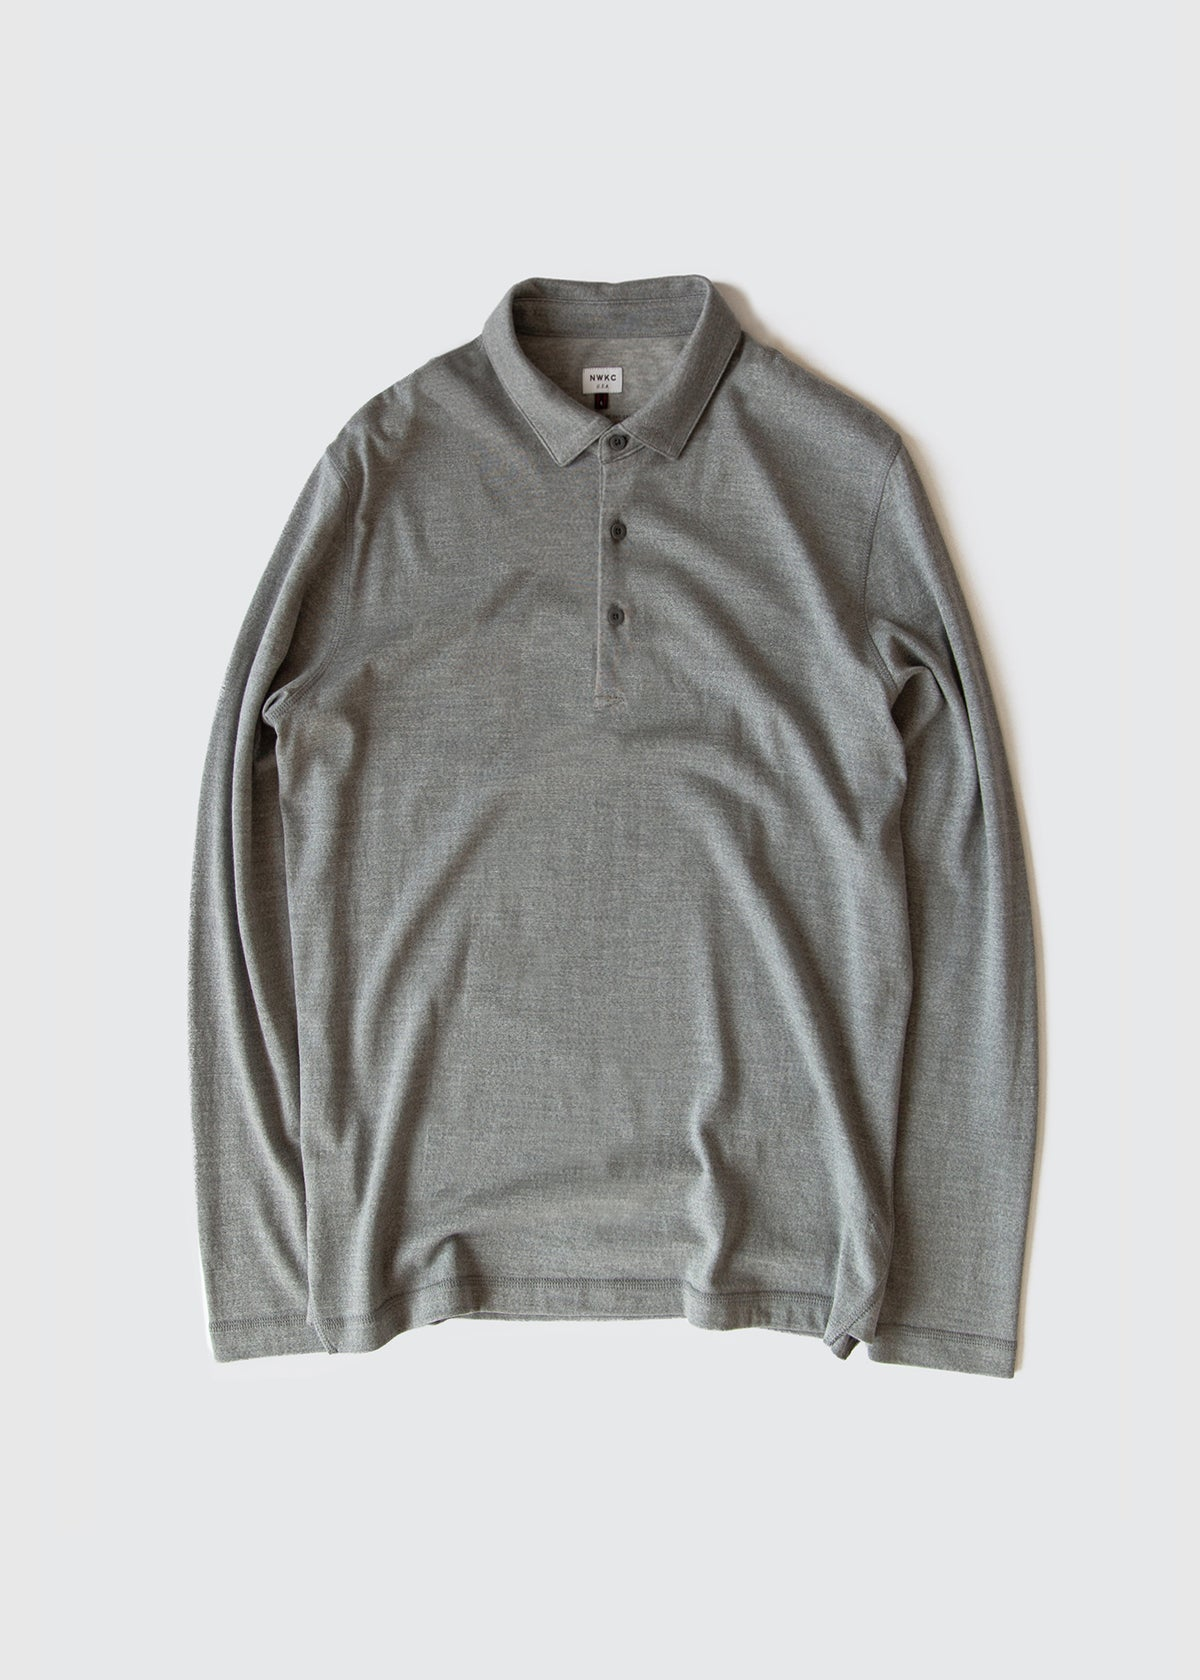 104 - LS POLO - GRAY - Wilson & Willy's - MPLS Neighbor Goods